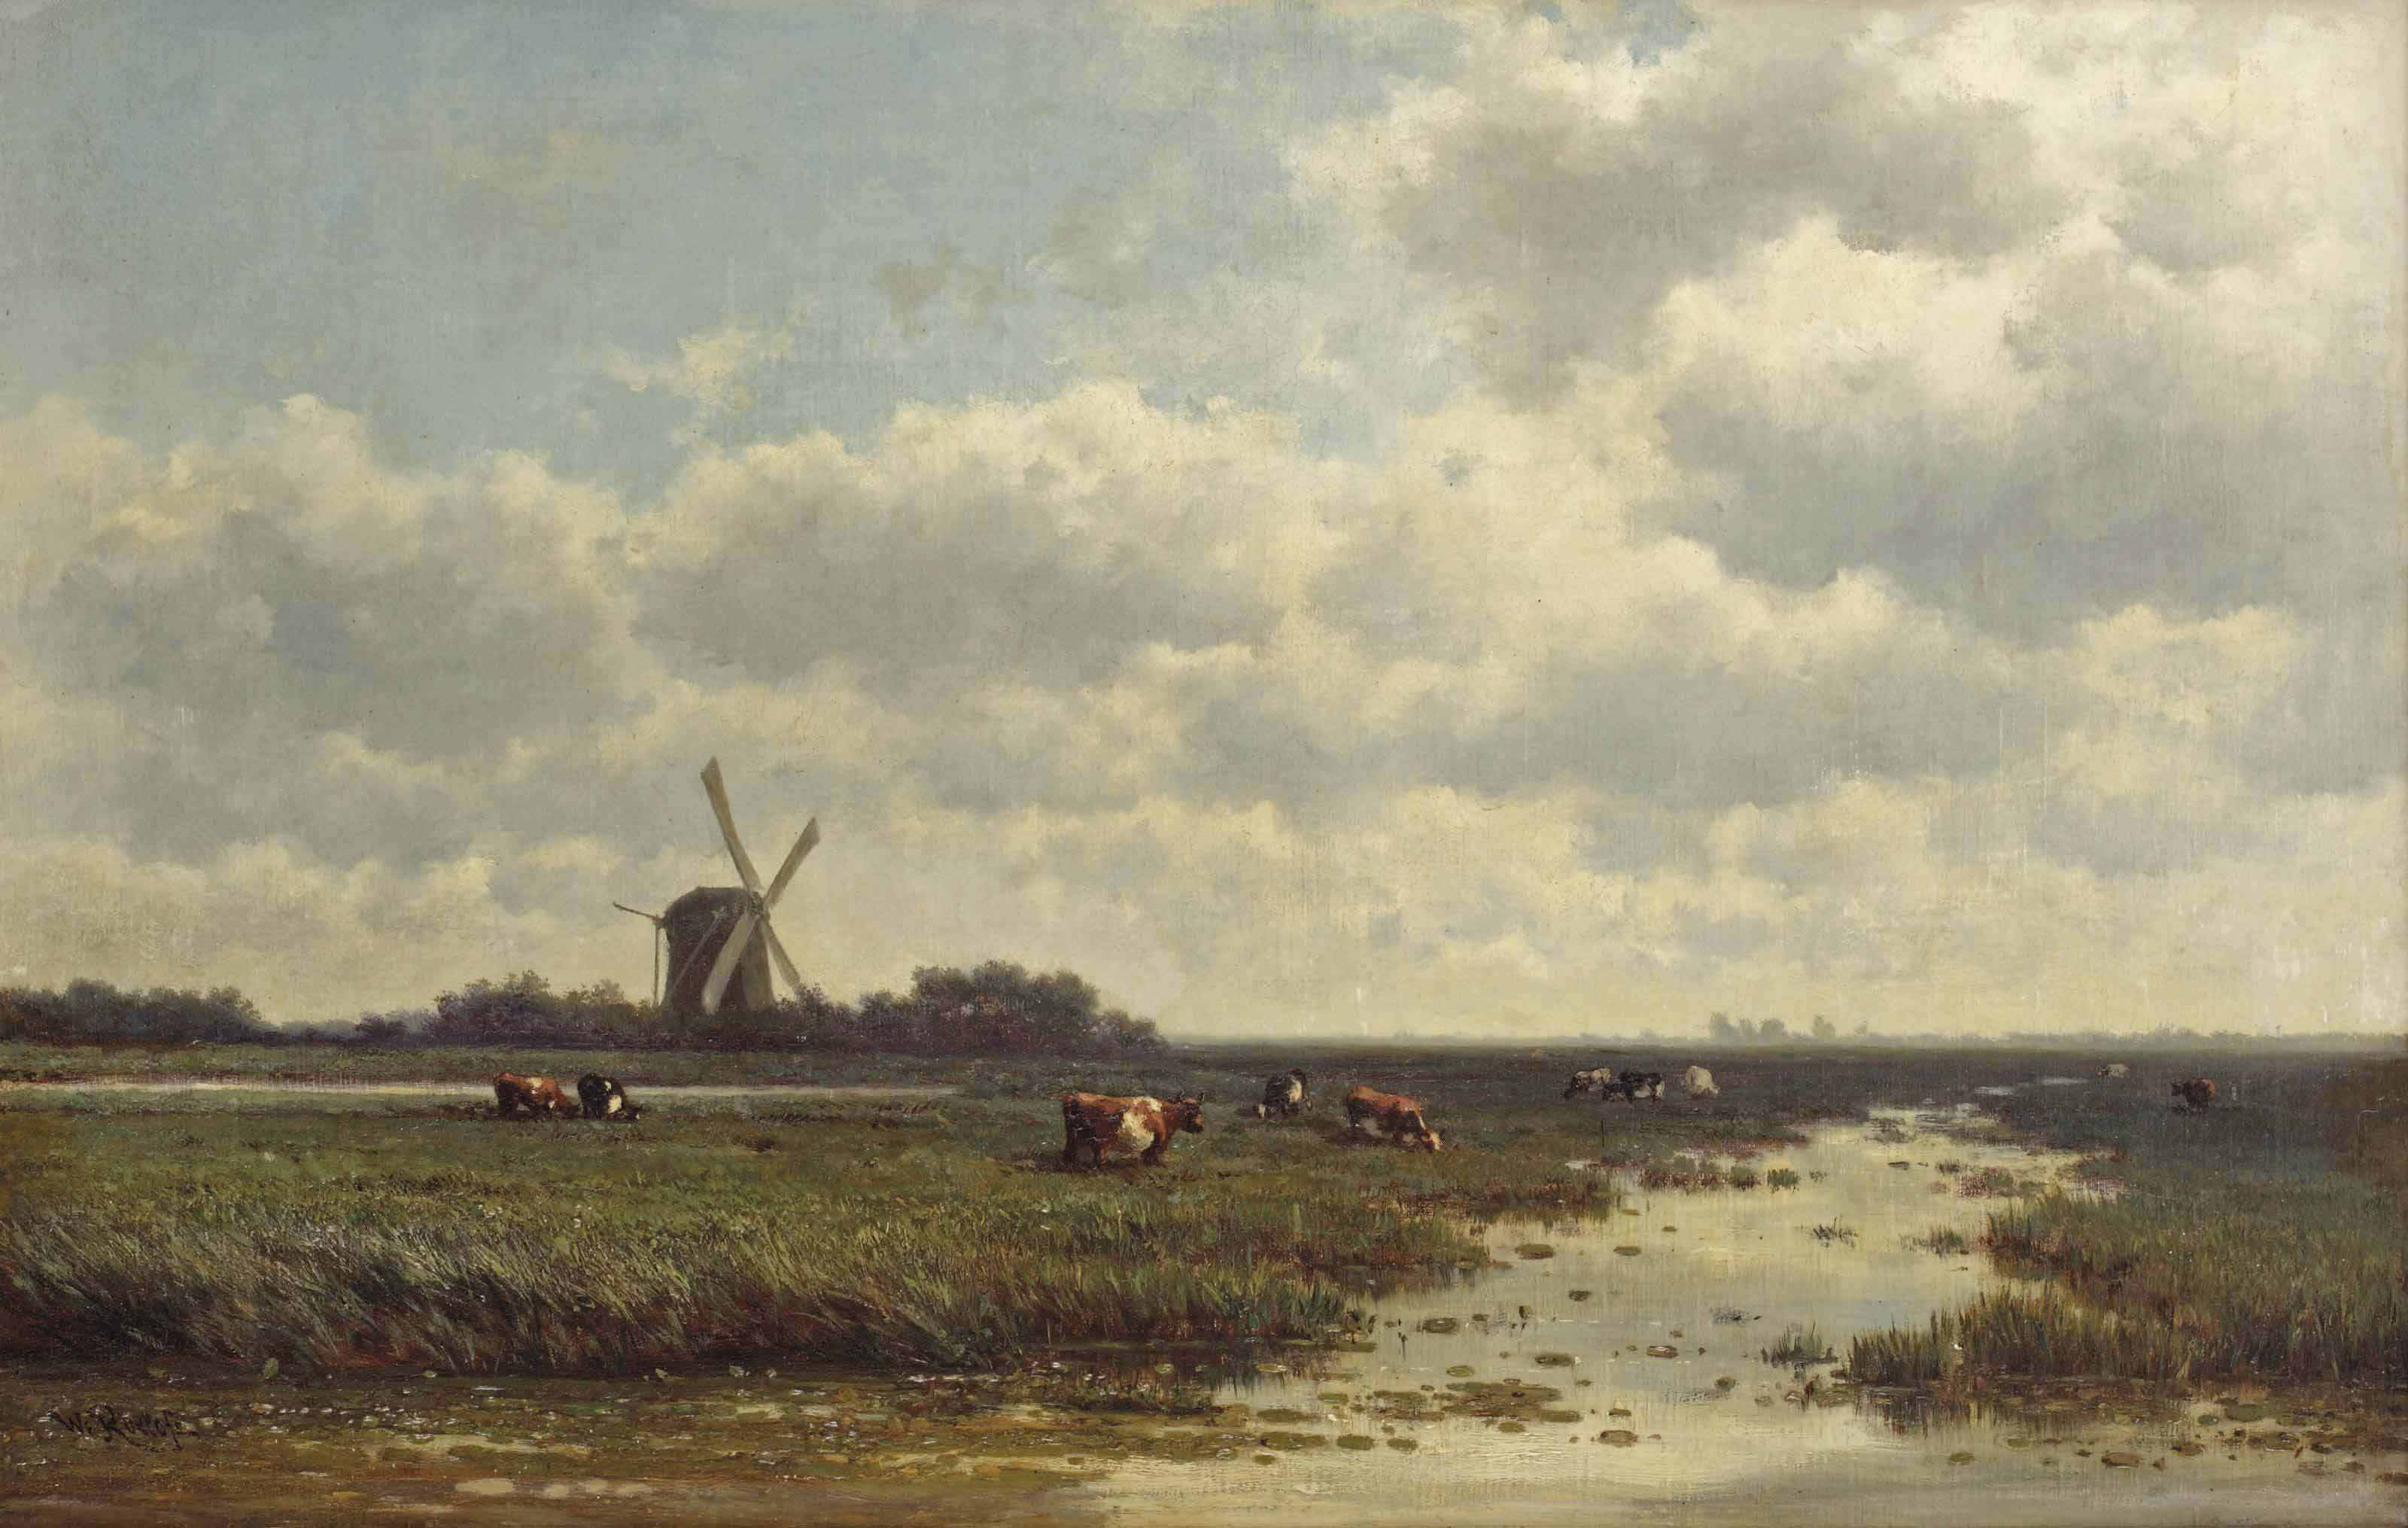 Cows grazing near a windmill